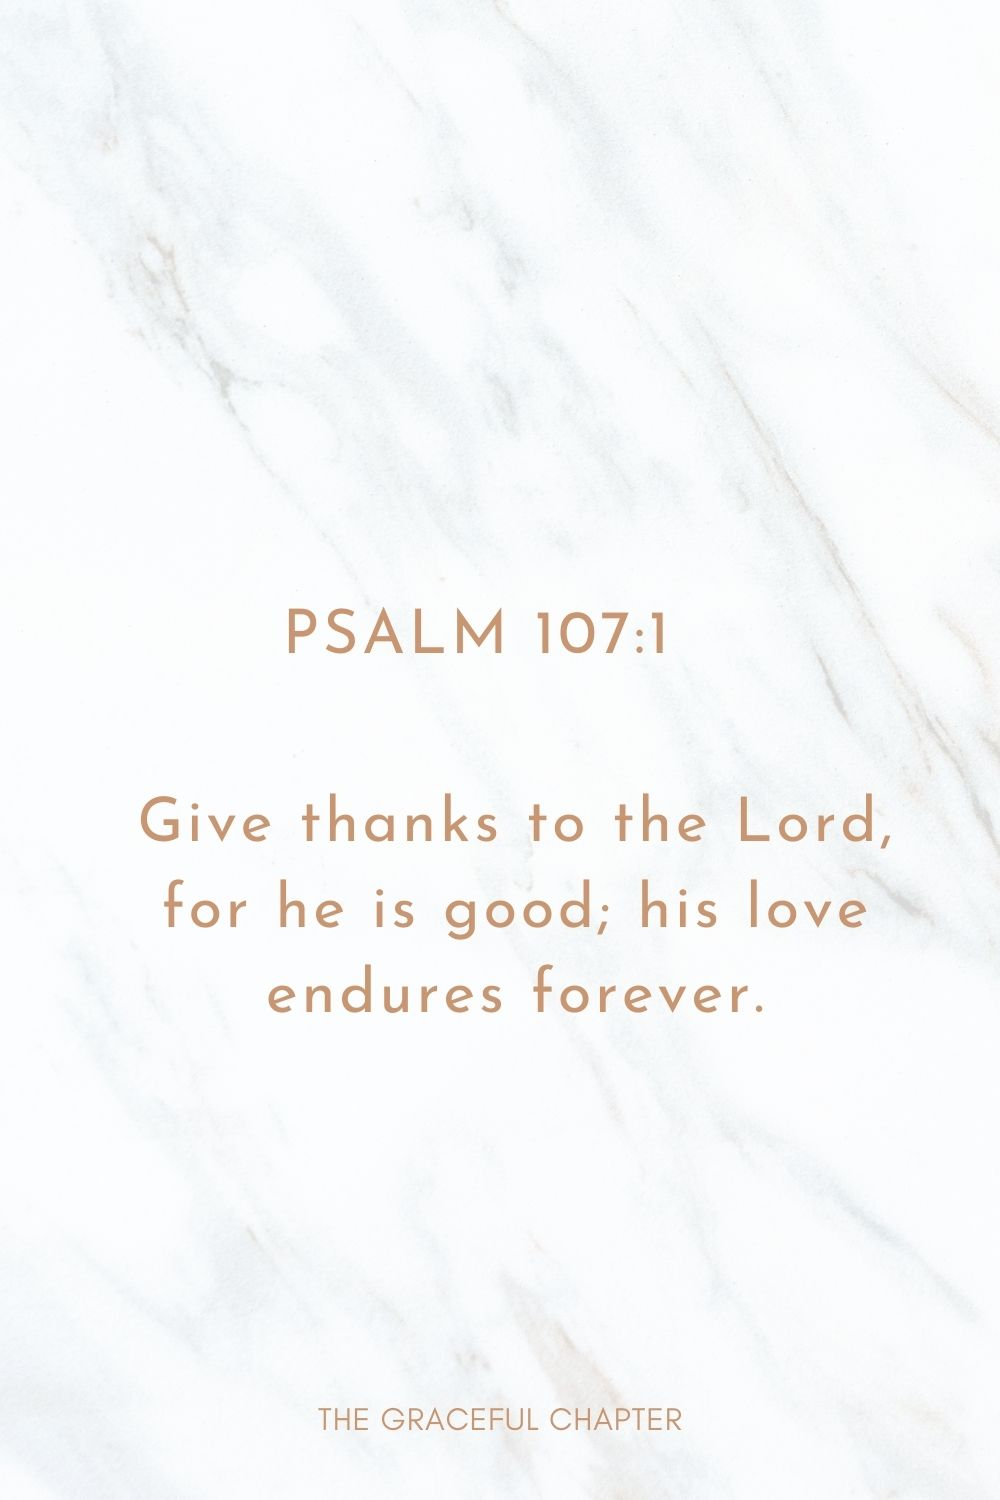 Give thanks to the Lord, for he is good; his love endures forever. Psalm 107:1